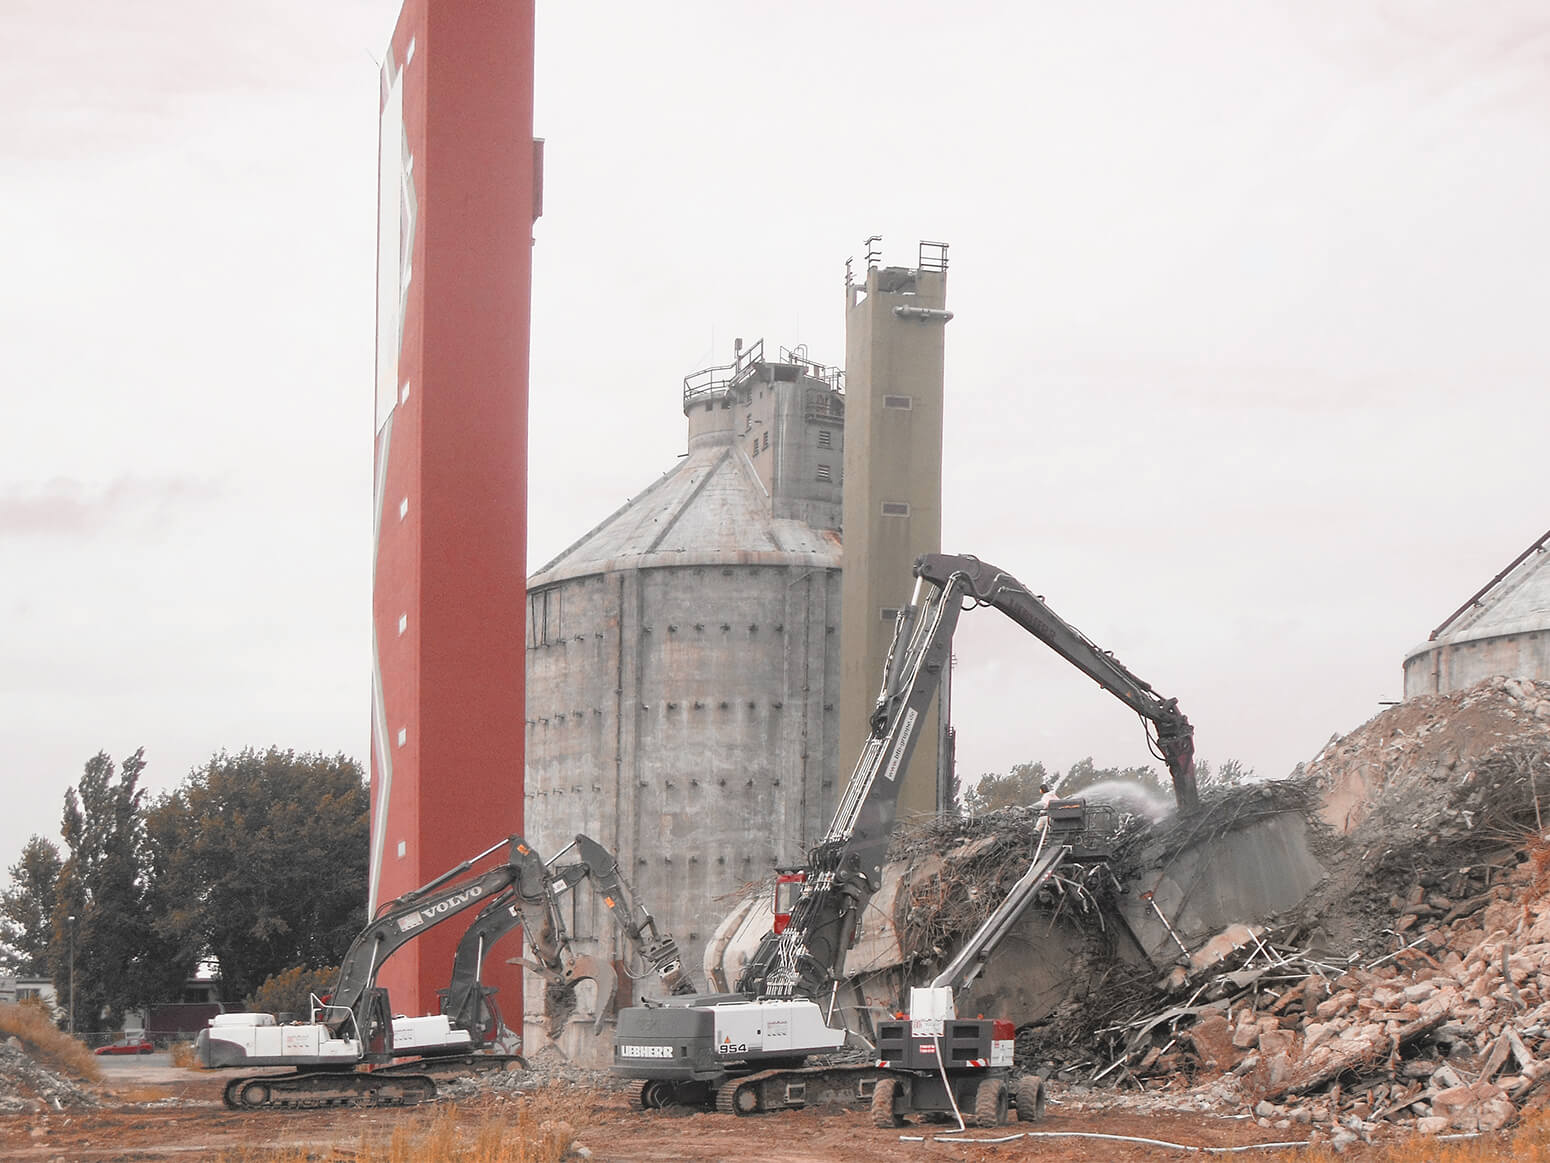 Several heavy construction vehicles tear down buildings made of reinforced concrete with two old digester towers in the background